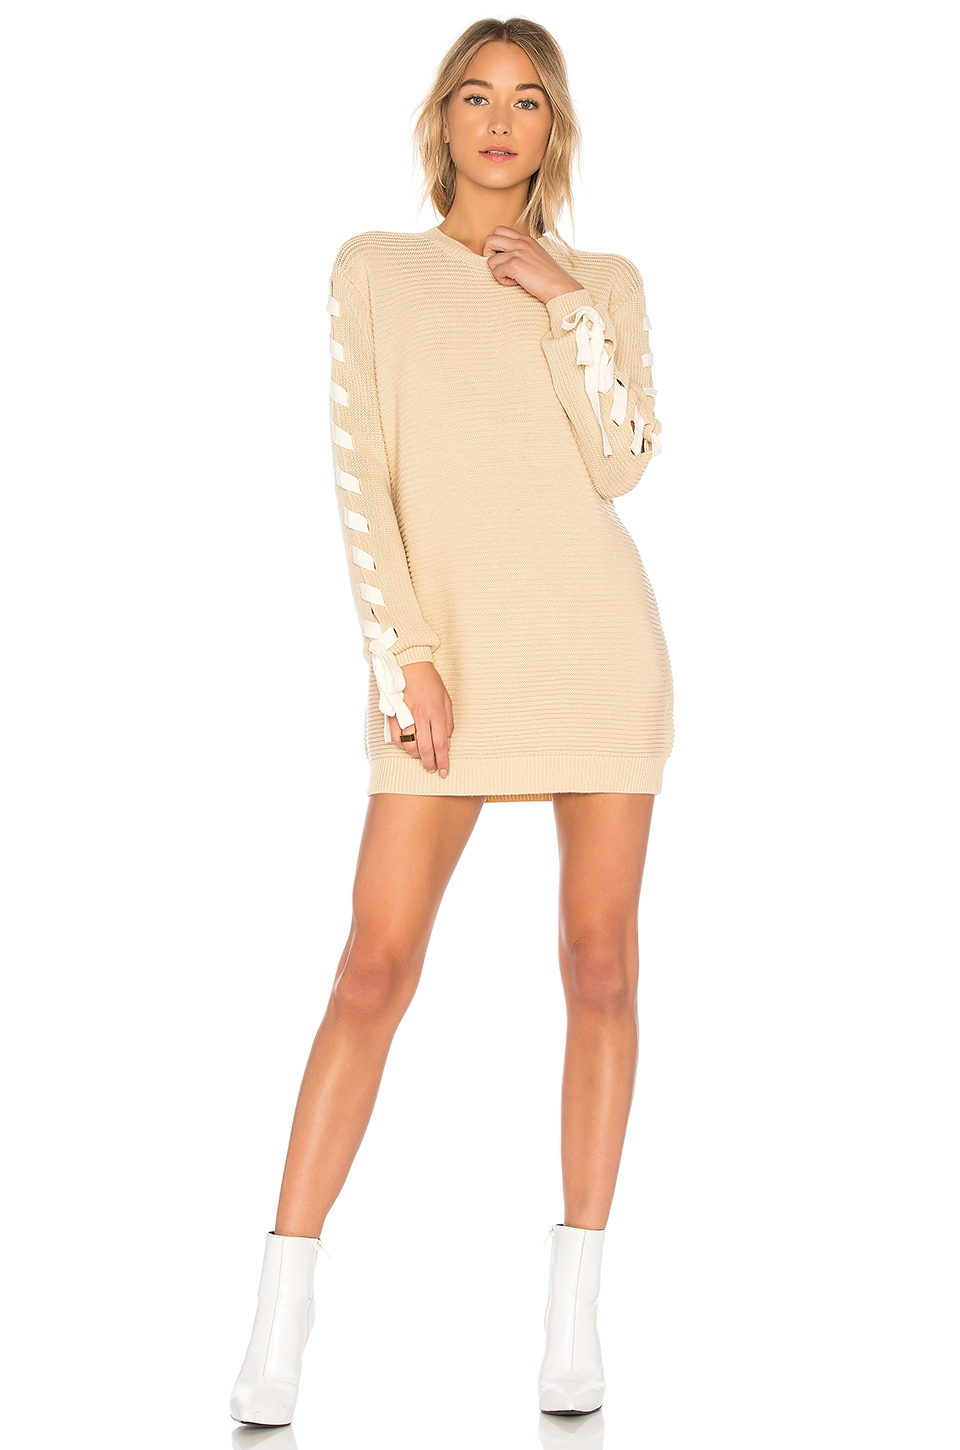 Lovers + Friends x REVOLVE Madison Dress in Cream & White